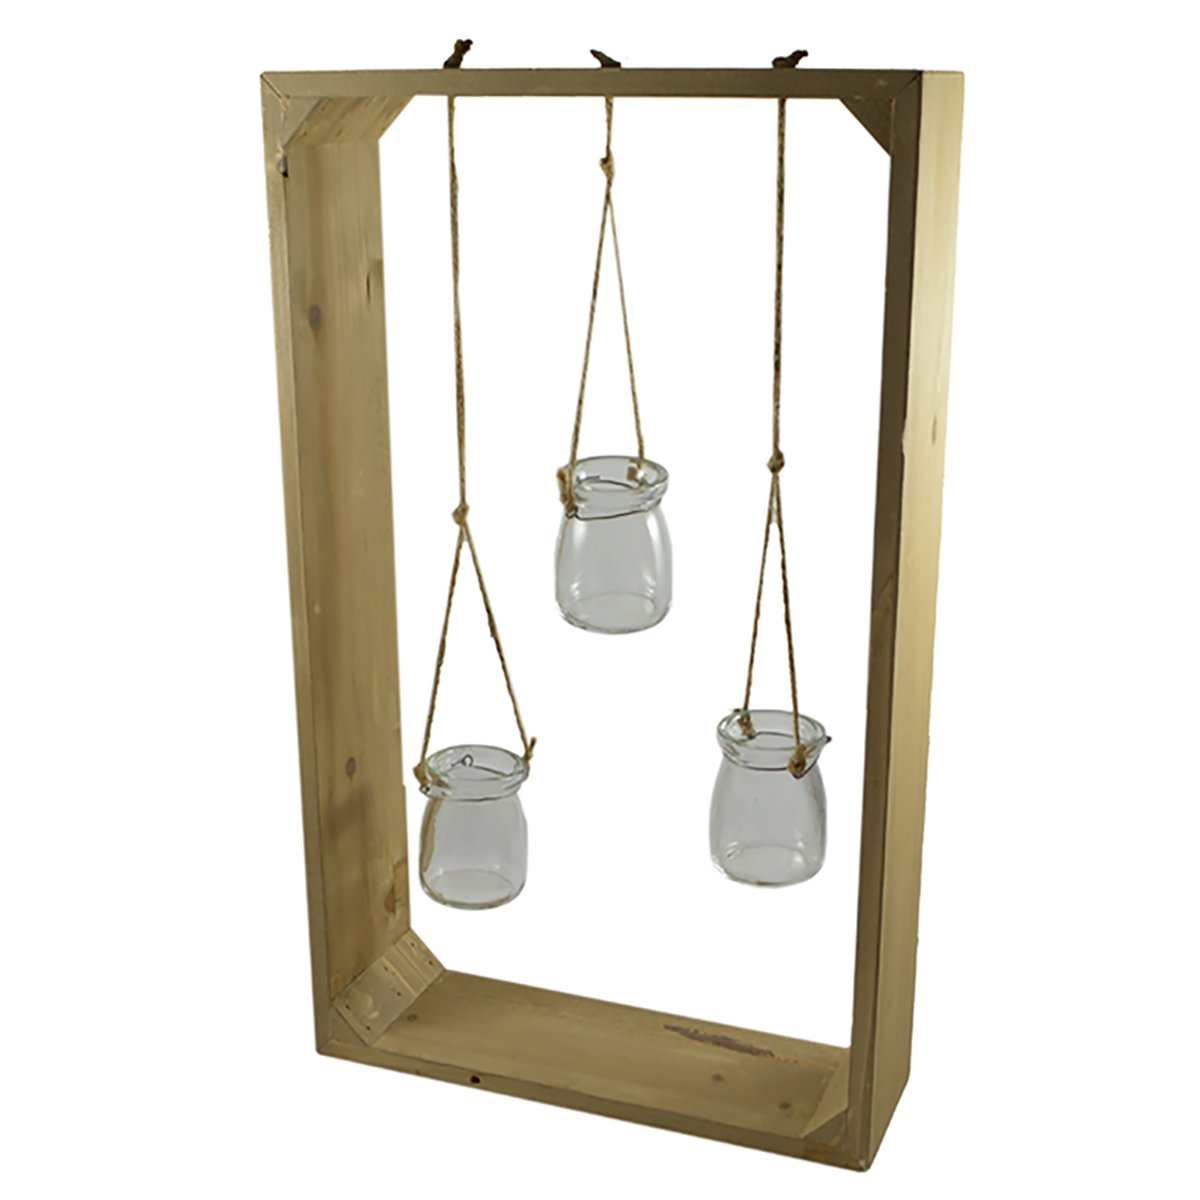 1pce Large Framed Mini Plant Terrarium Jars Hanging in Stand-50Cm X 30Cm 3Pce by Art Supplies and Home